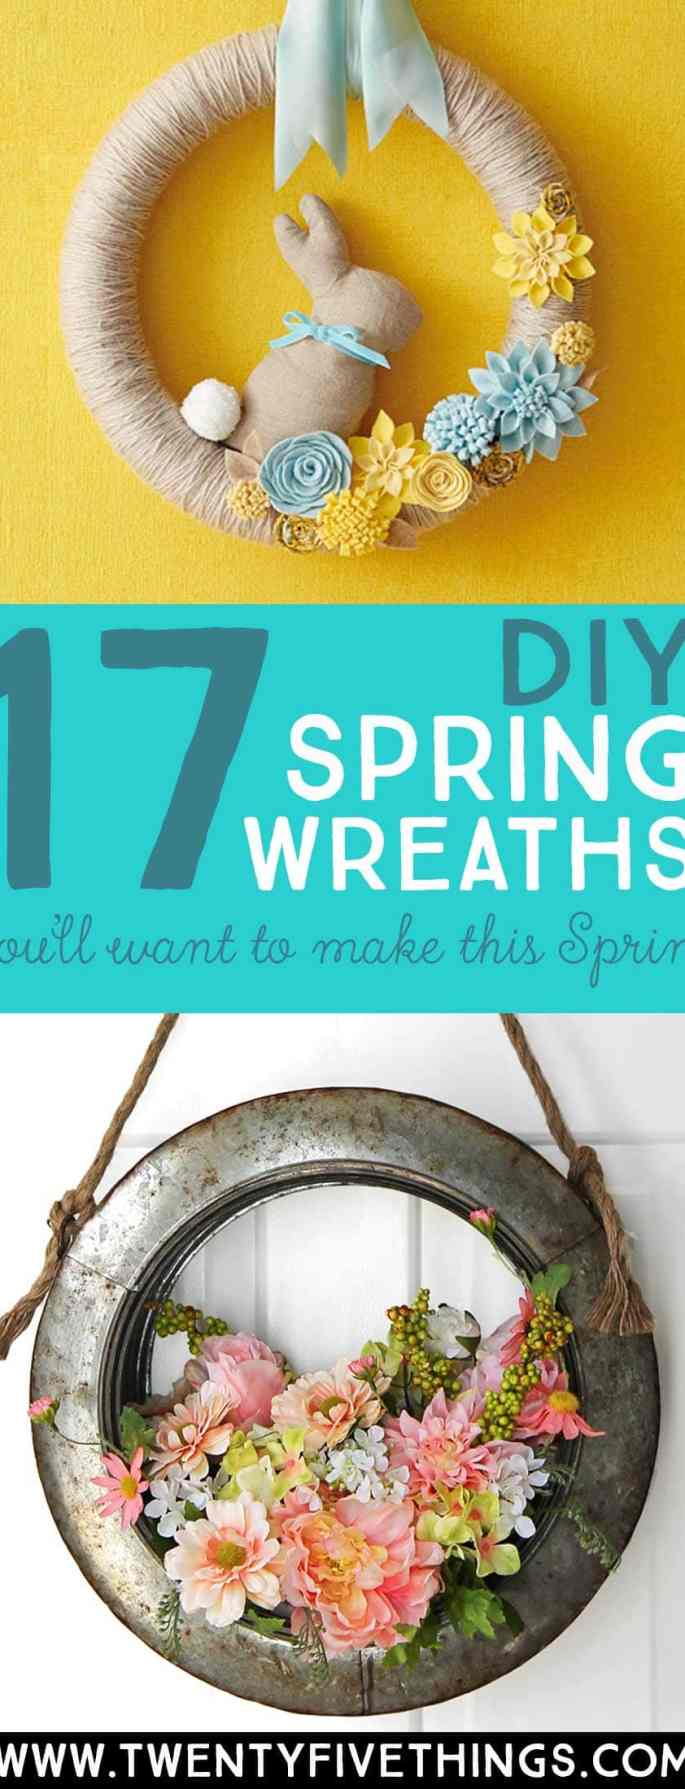 Make the perfect Spring wreath for your home this year with one of these DIY Spring wreath tutorials. Loads of ideas for all styles, including farmhouse decor and modern. #Spring #DIYWreaths